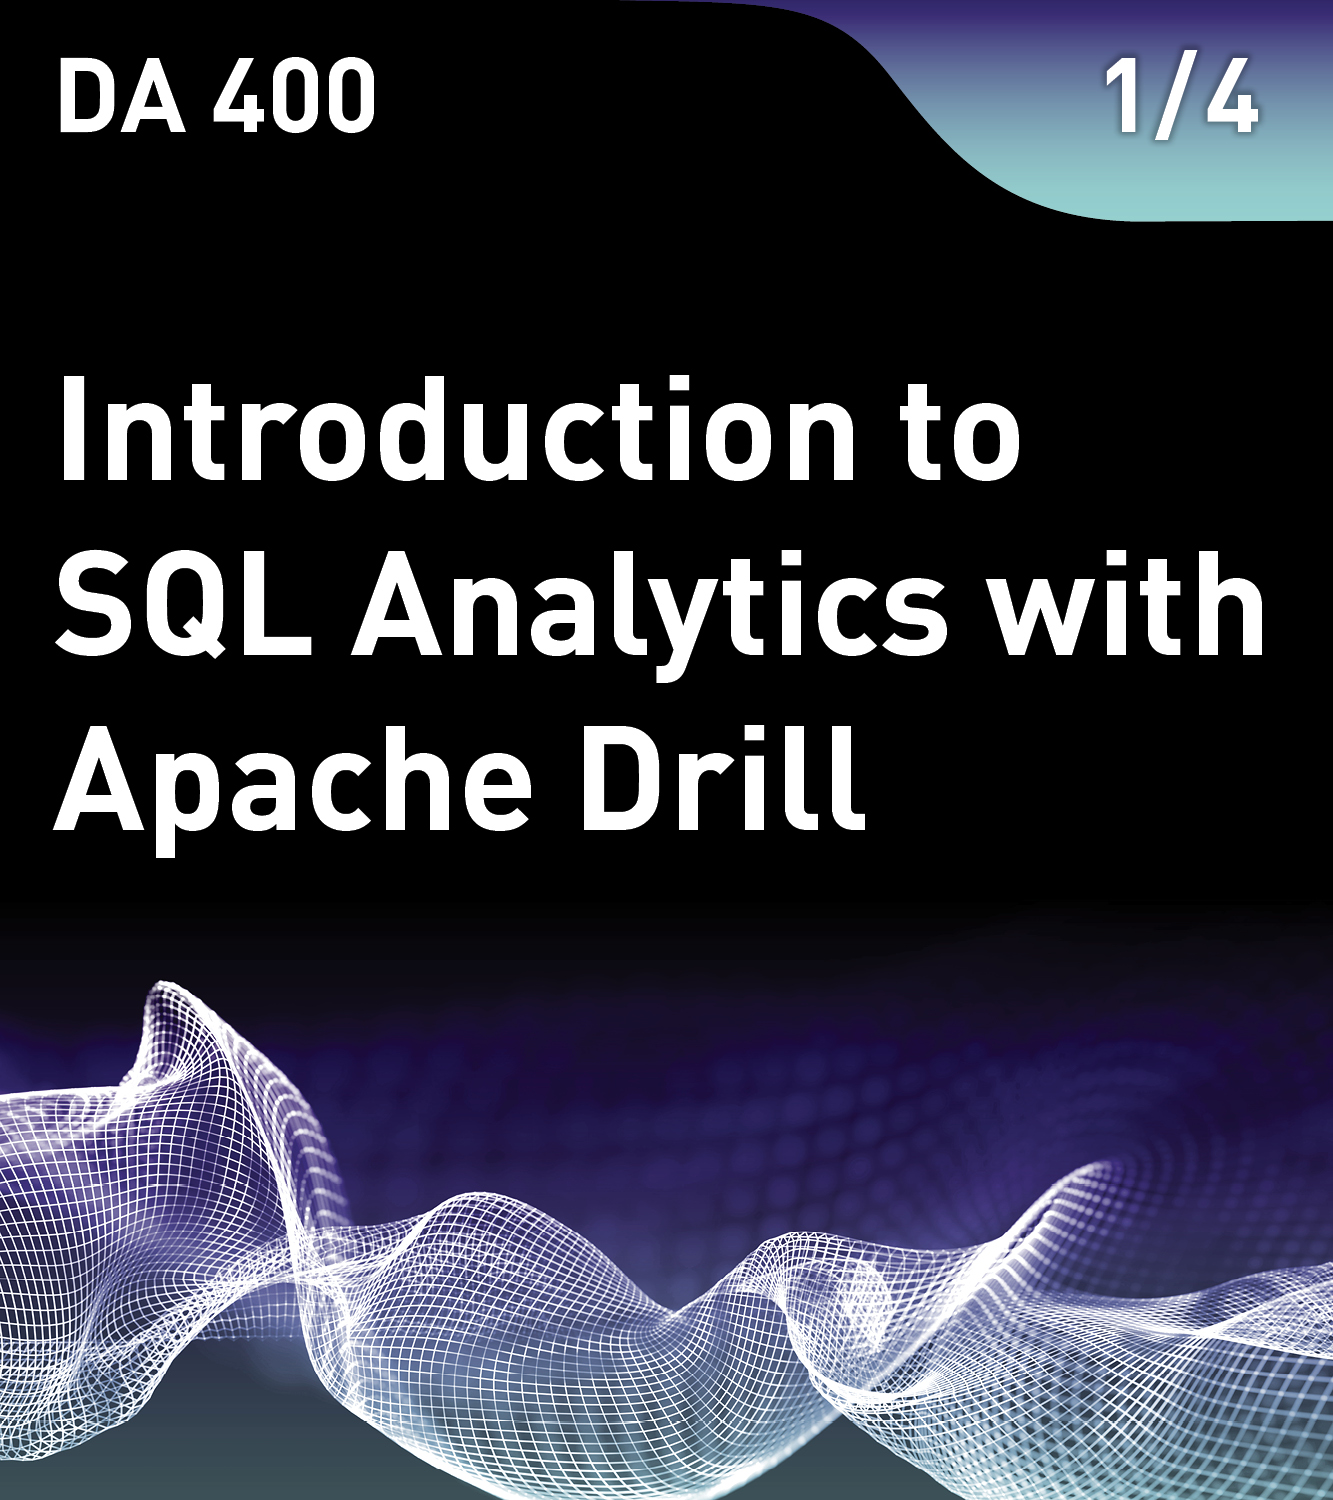 Introduction to SQL Analytics with Apache Drill